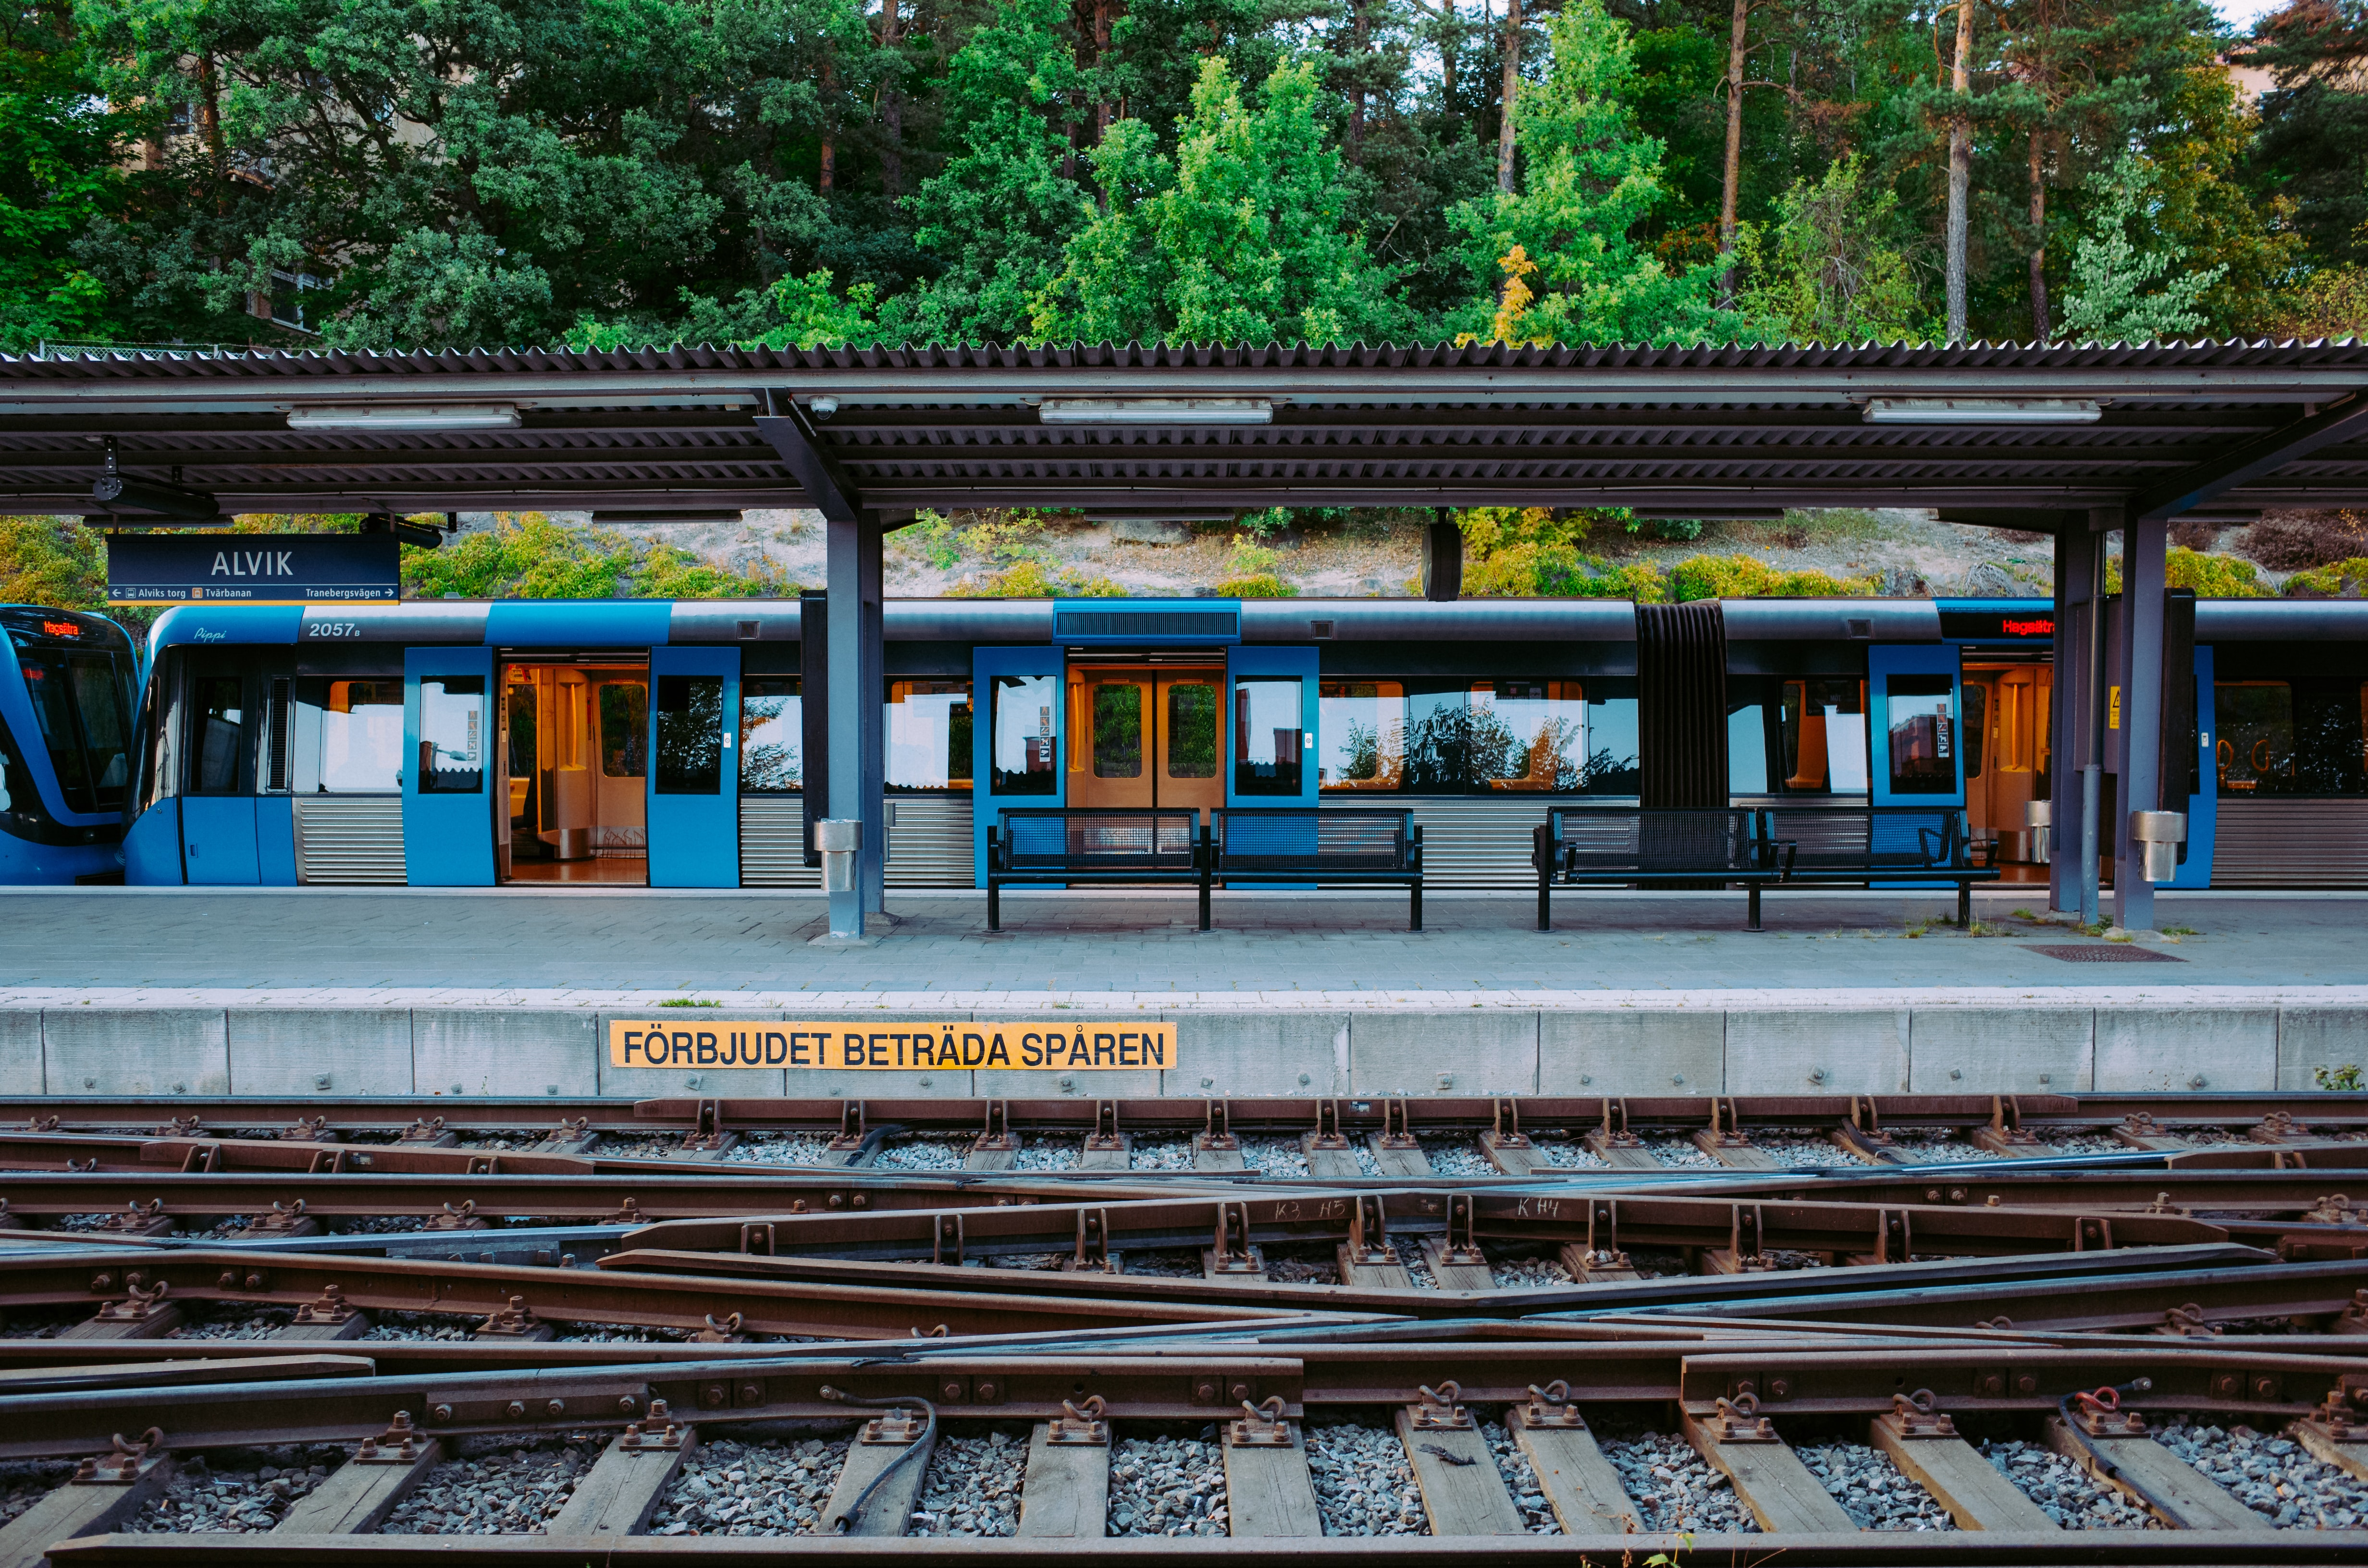 blue and gray train on station